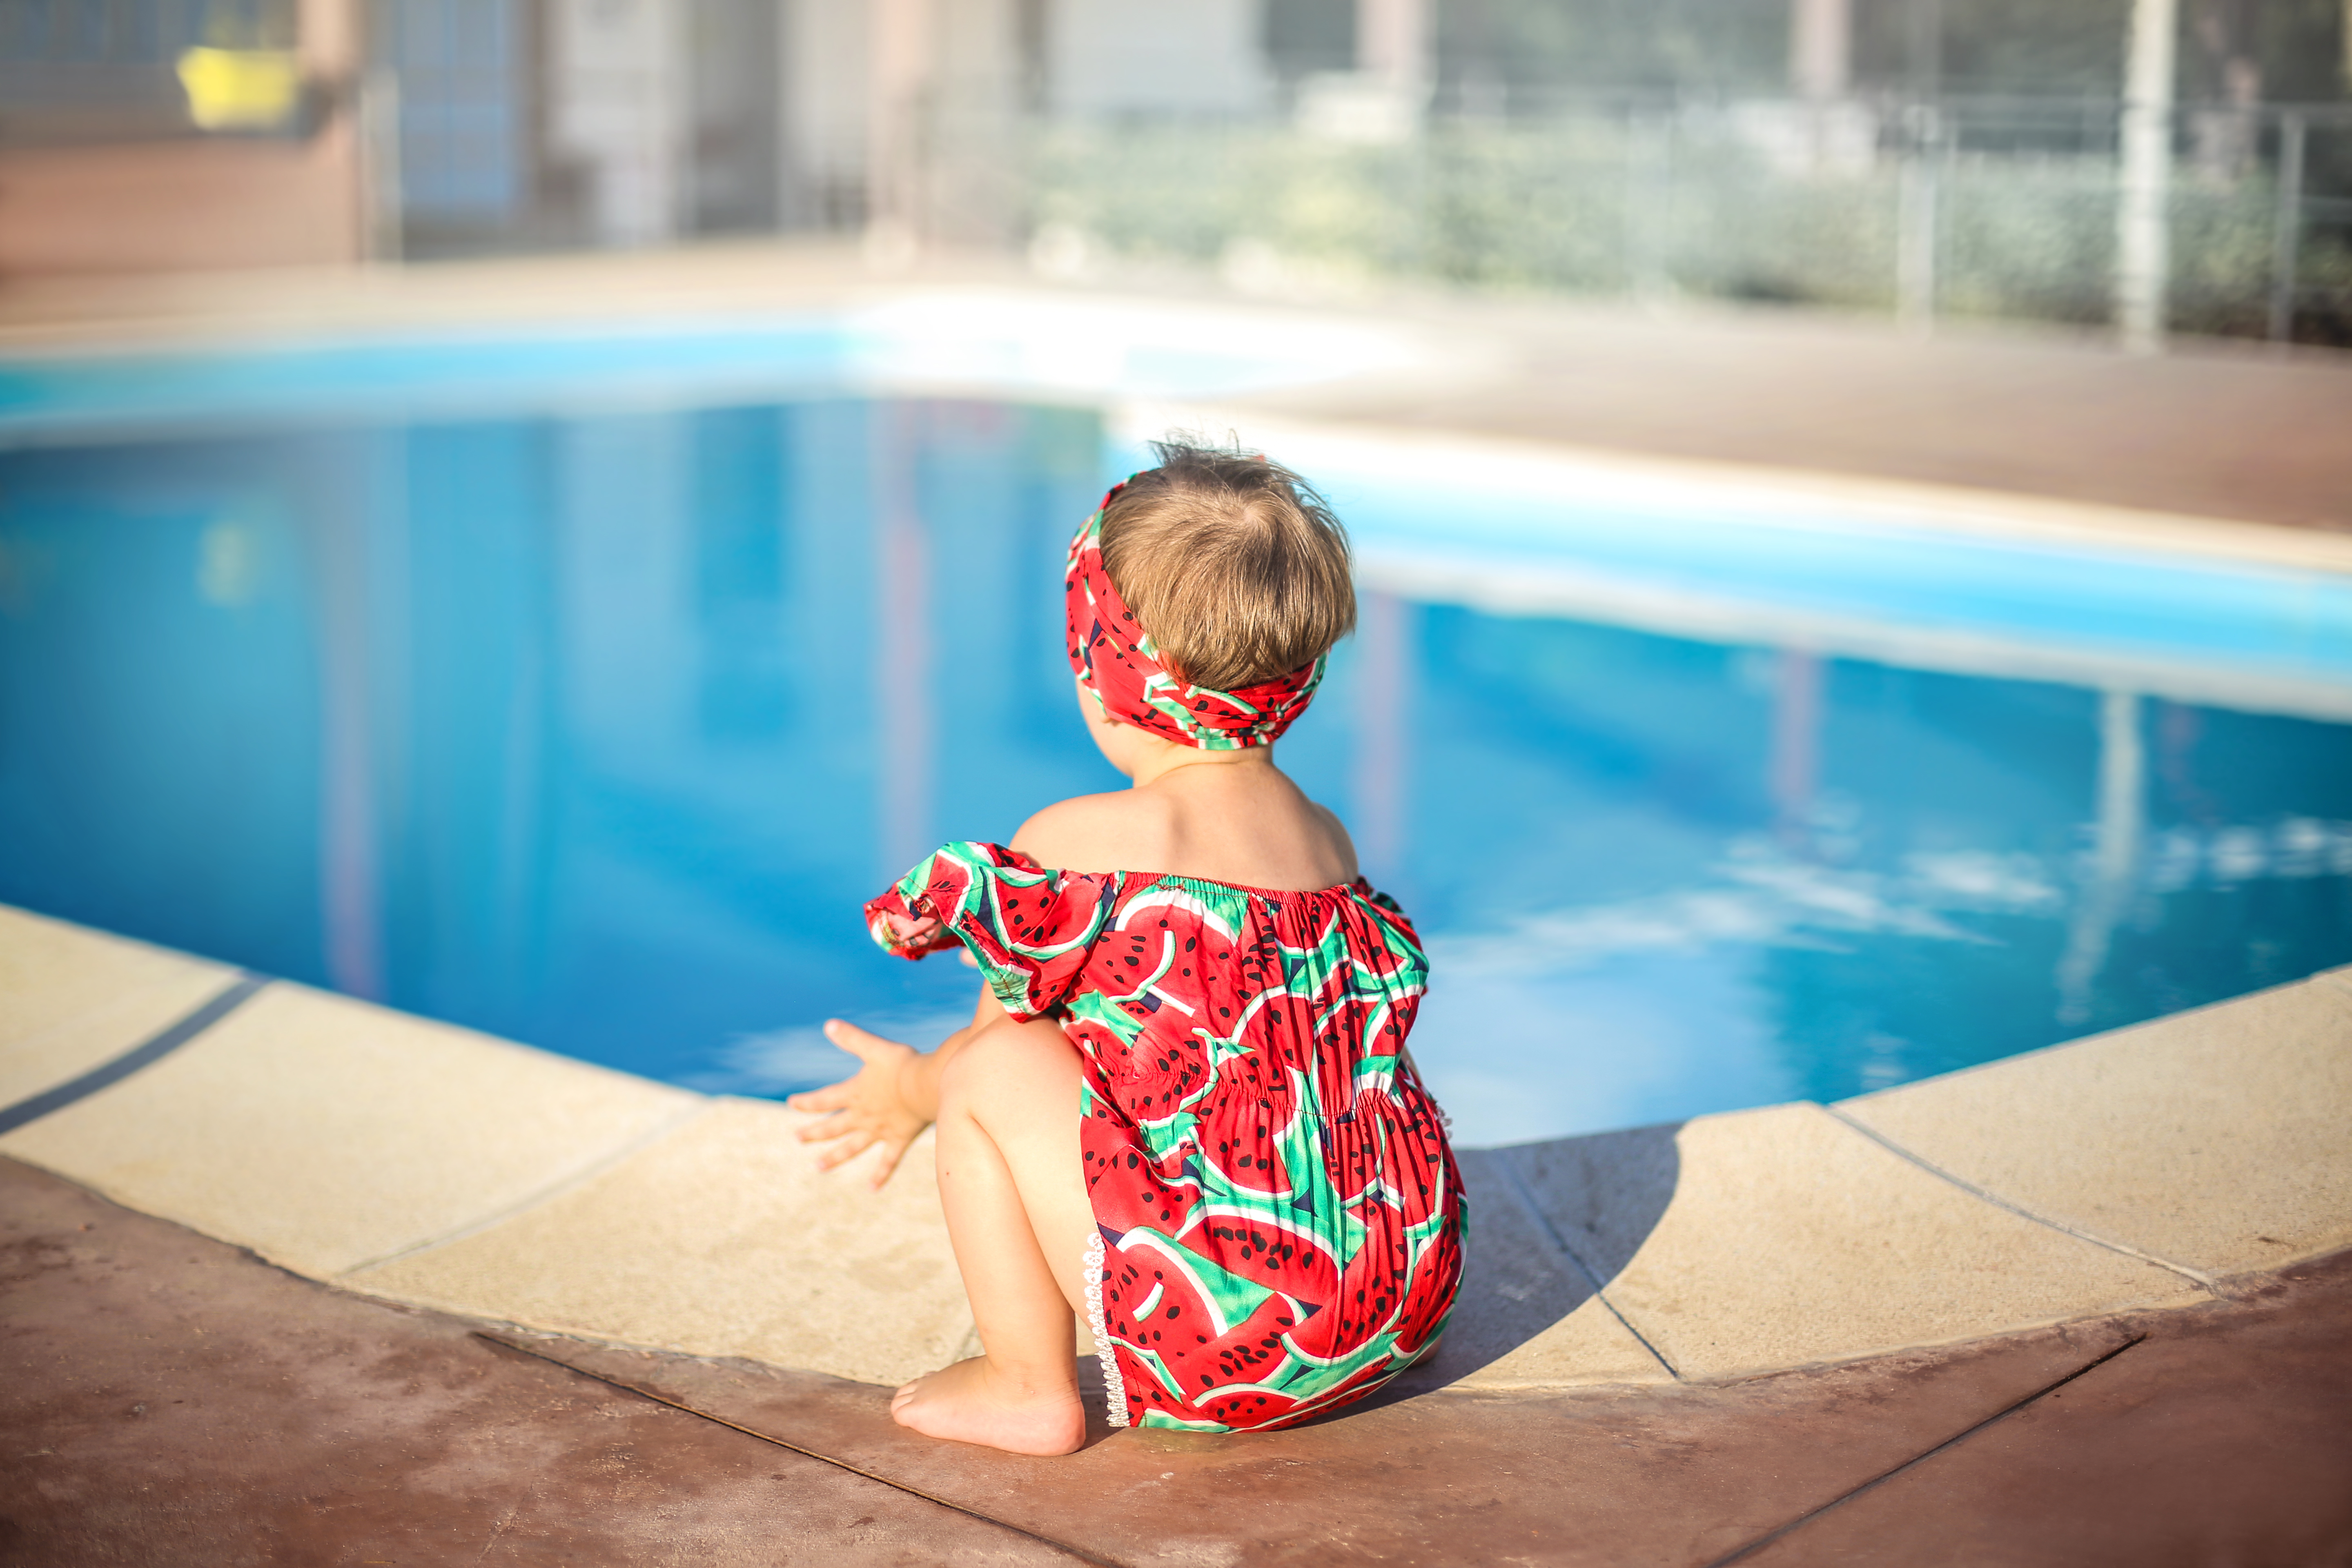 Child Drowning Rises During Covid - What To Know